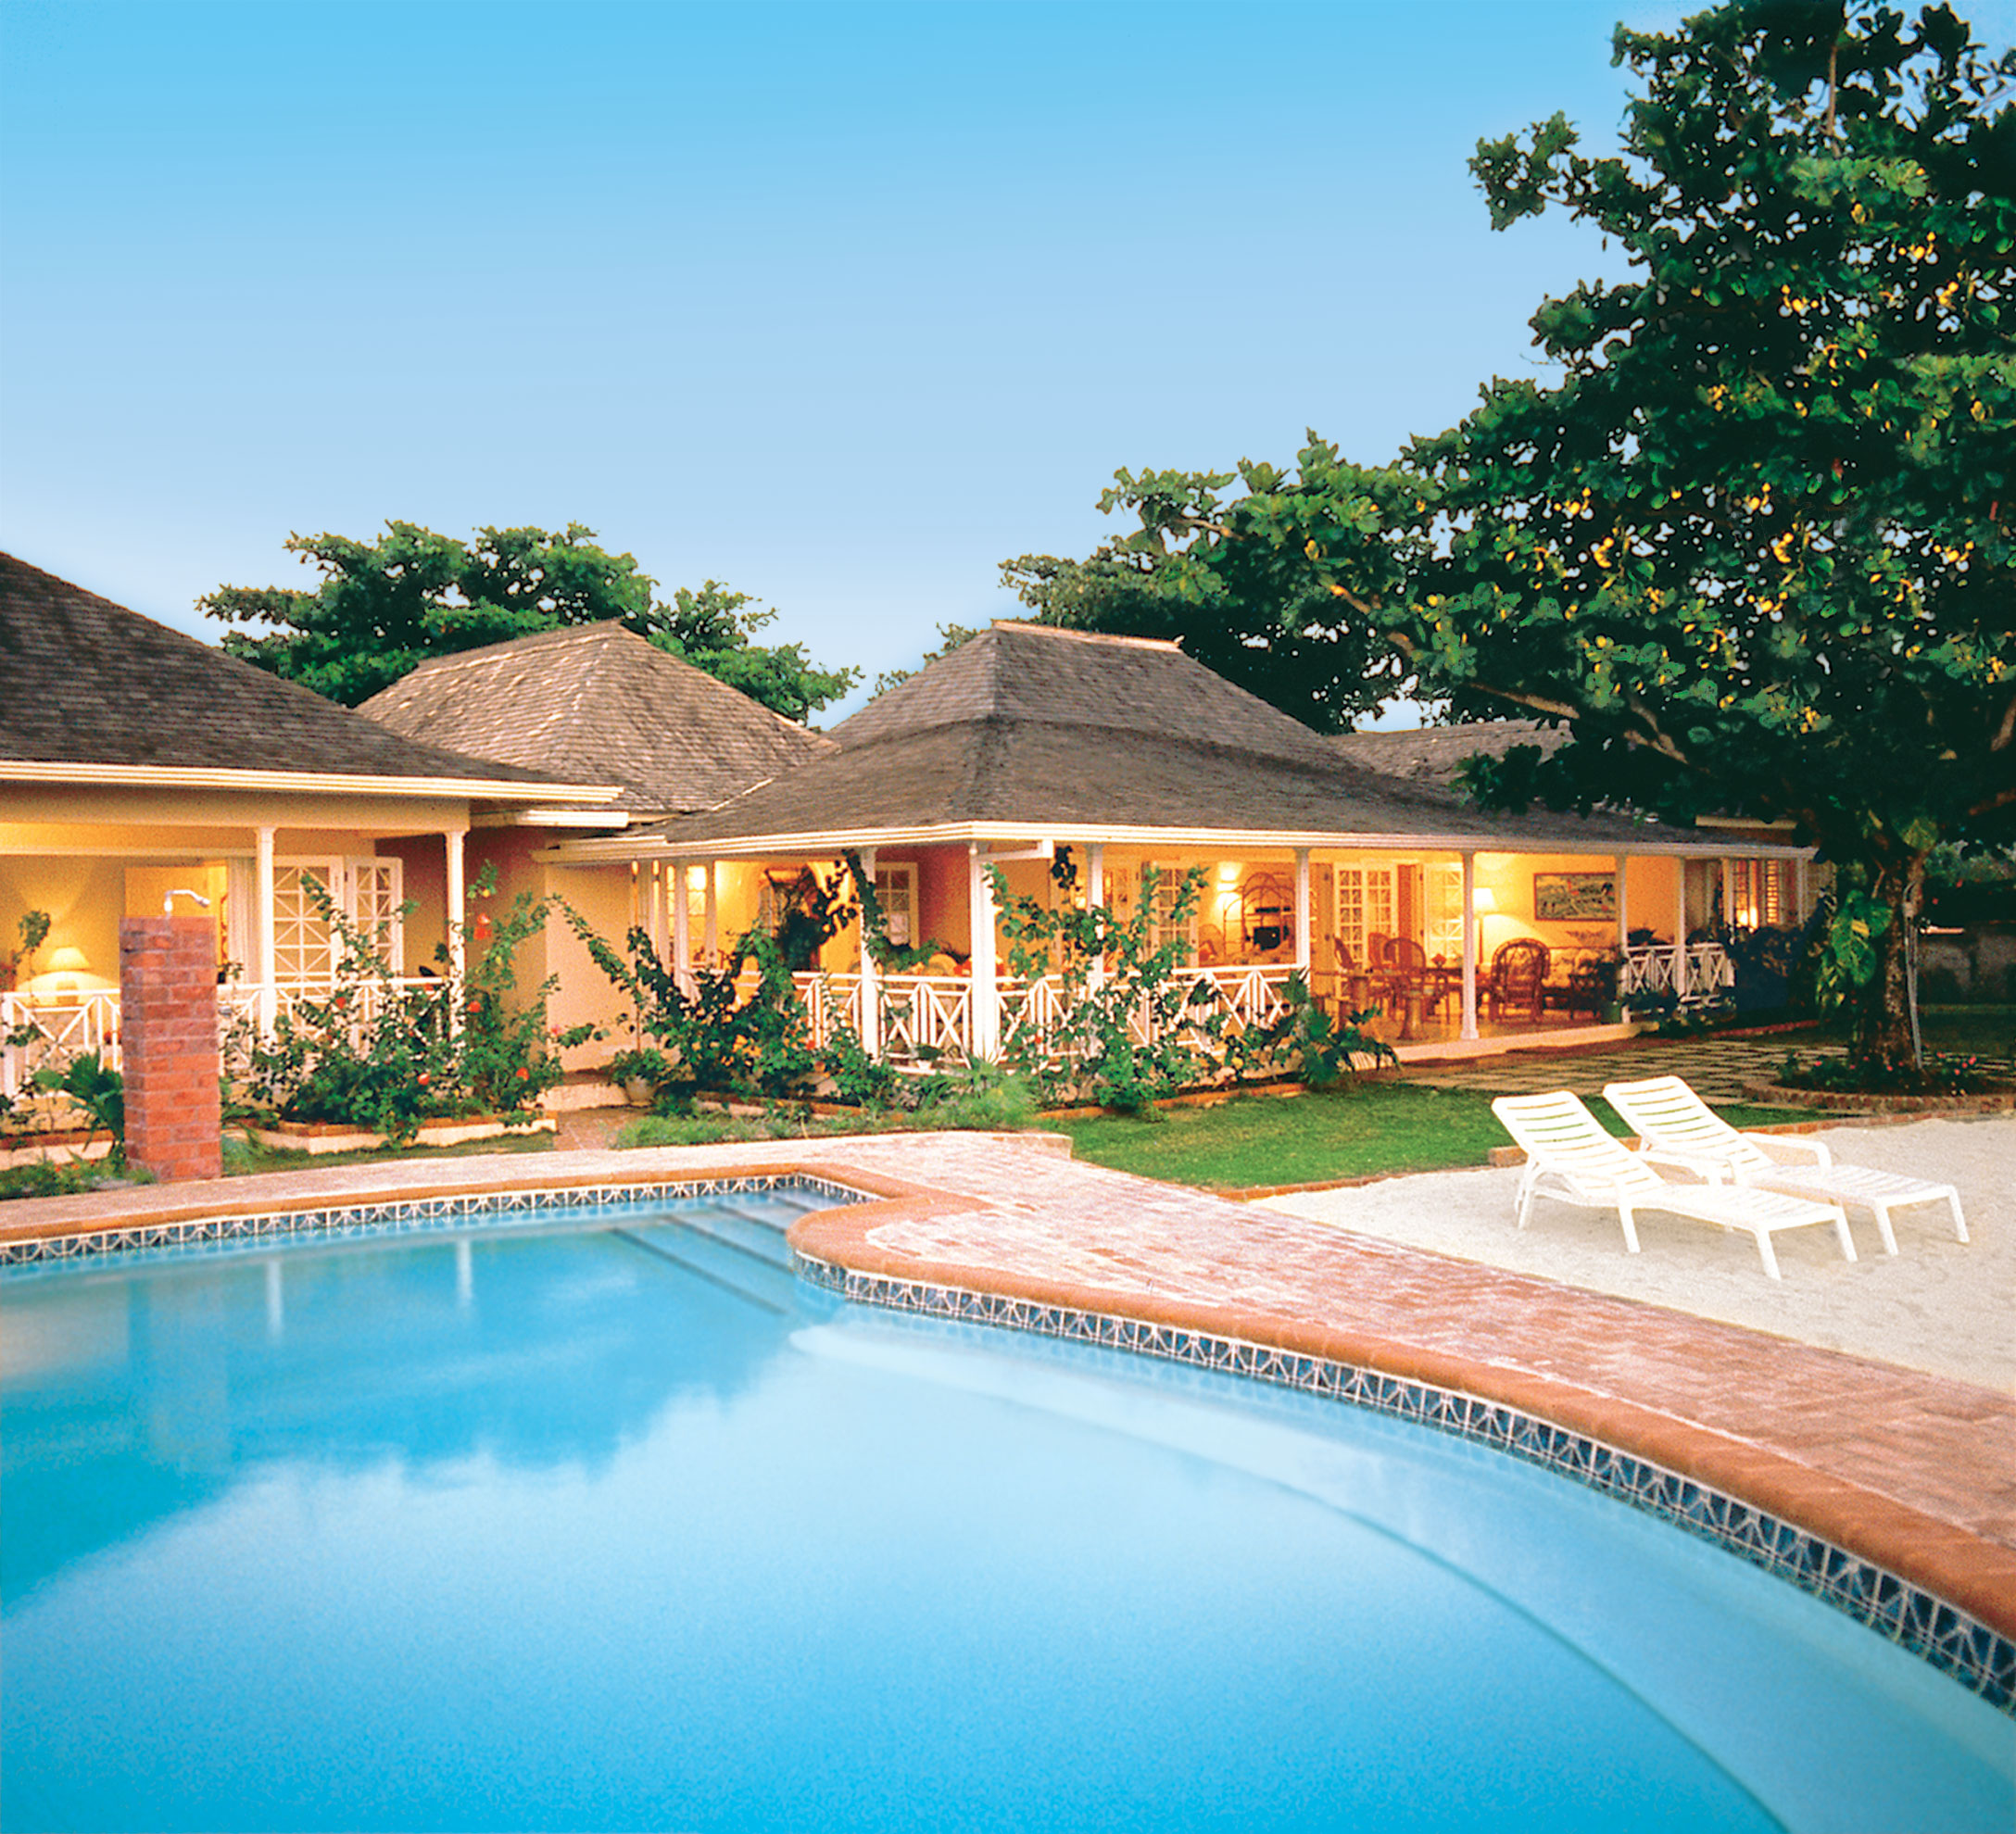 JM144 View of Villa From Pool